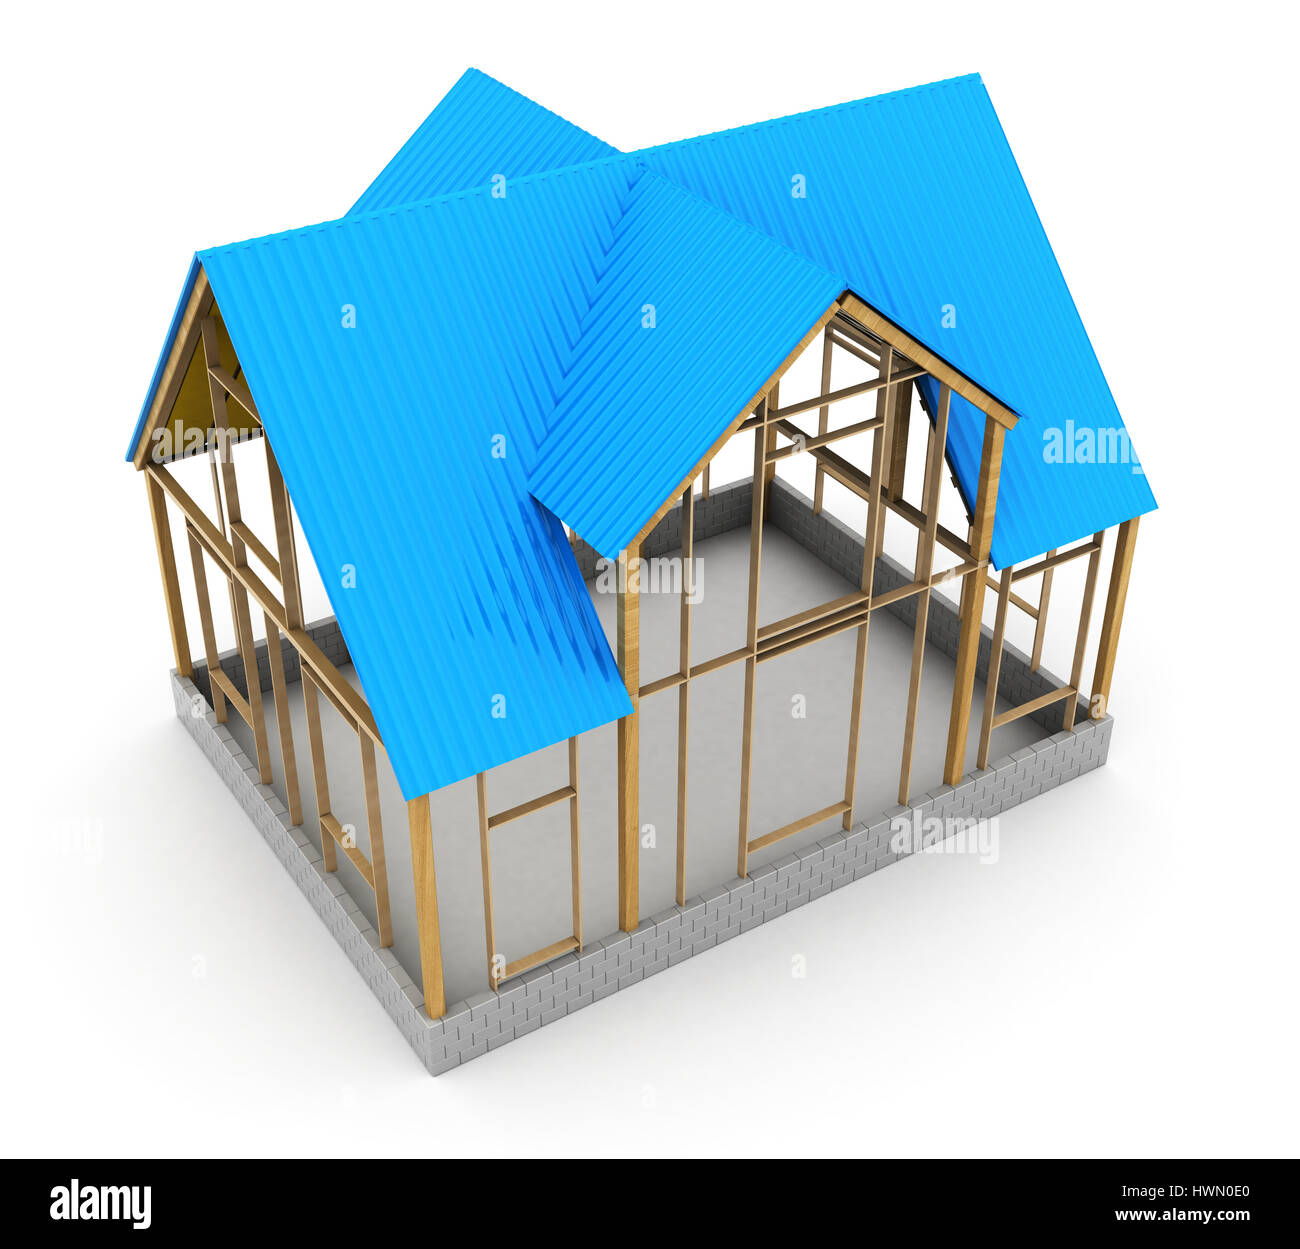 3d Metal Building Diagram Electrical Wiring Electric Illustration Of Frame House Construction Blue Roof Stock